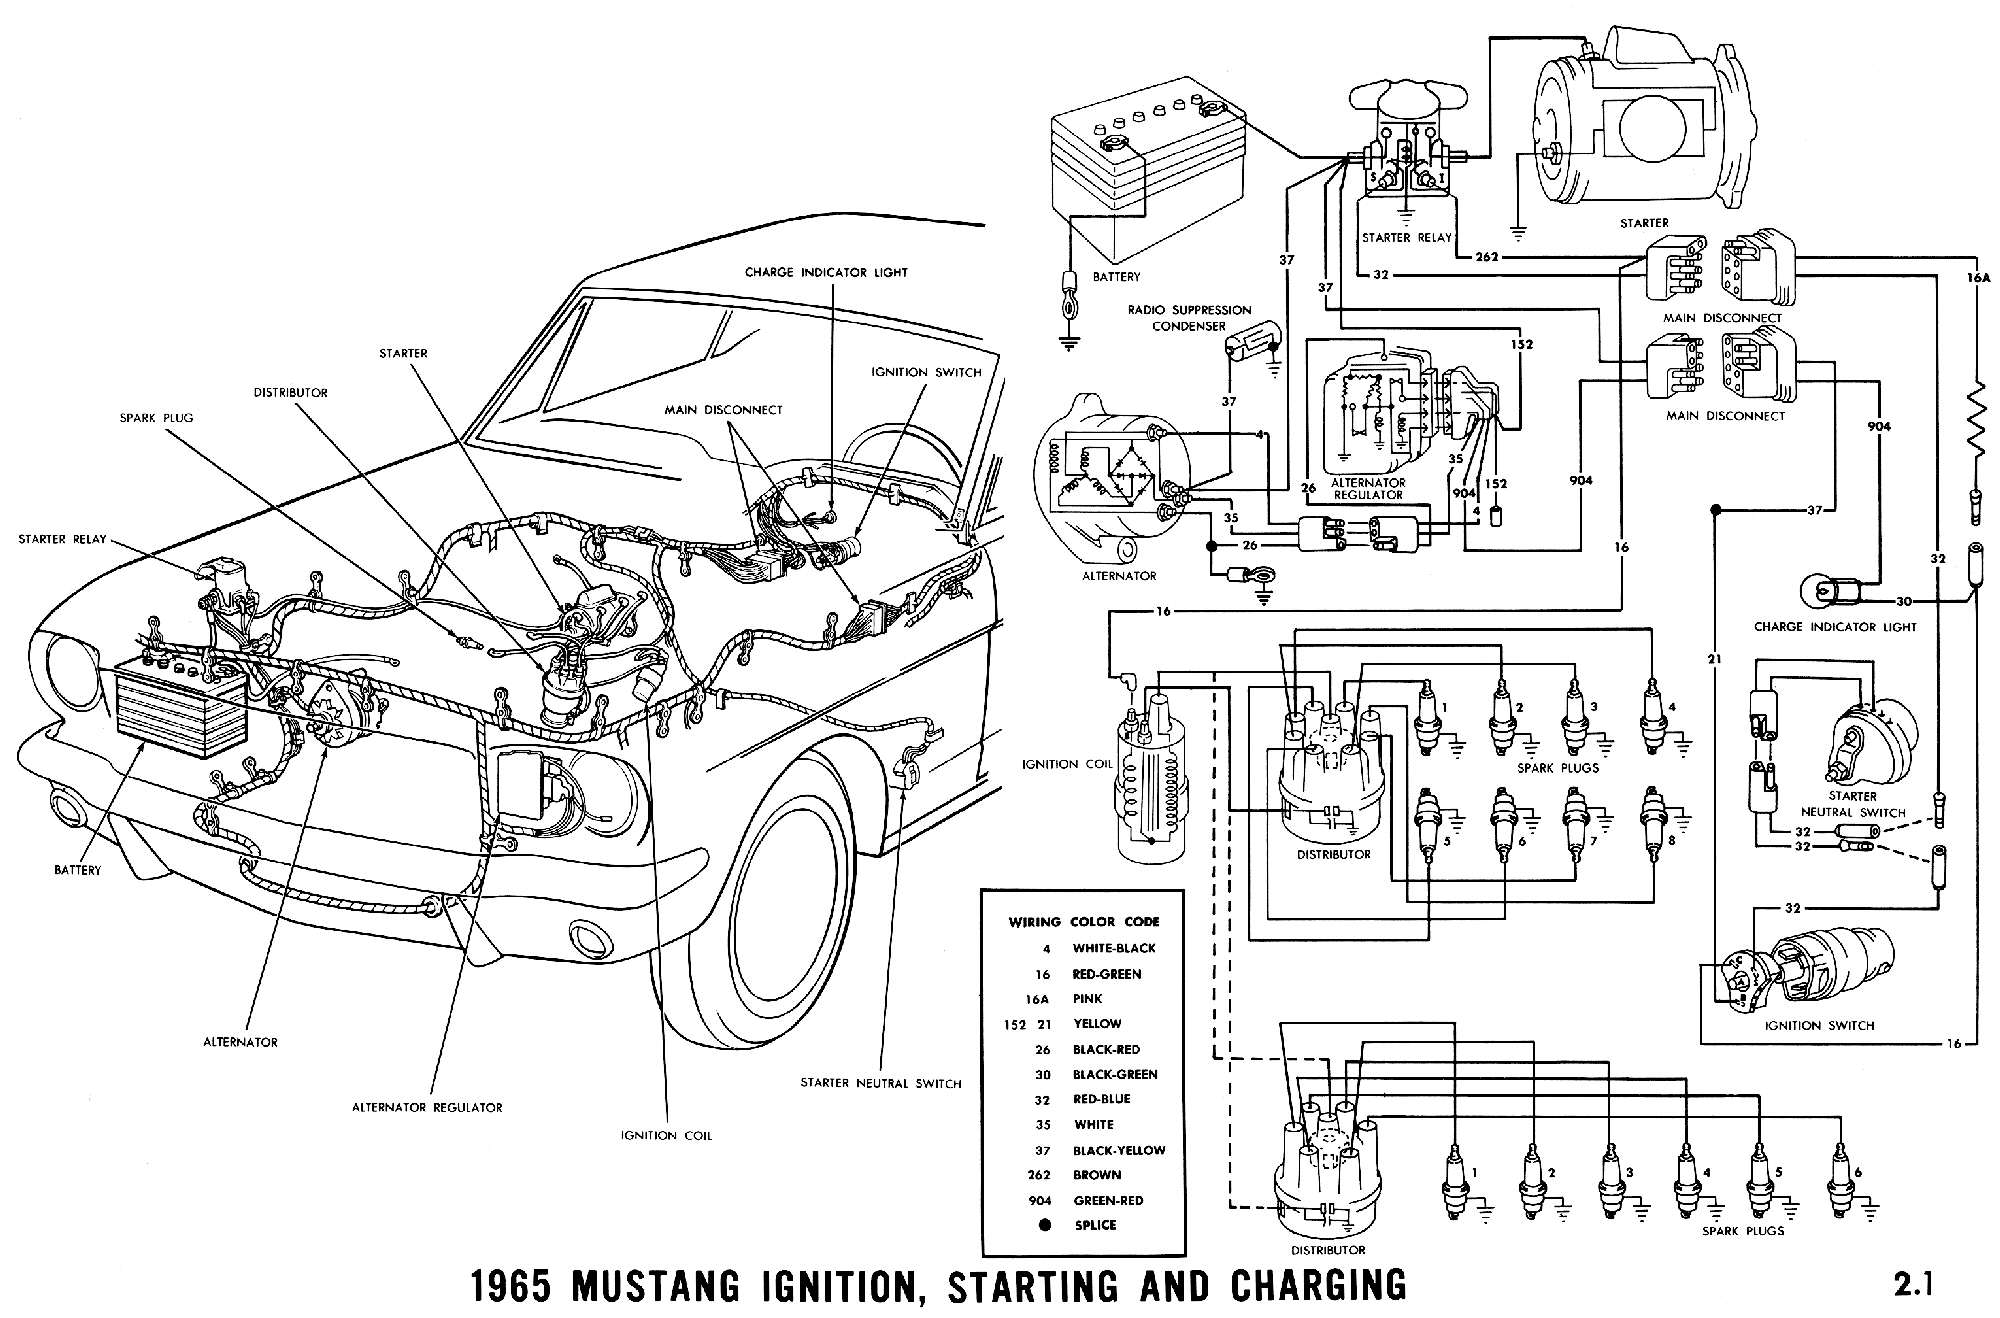 1965c 1965 mustang wiring diagrams average joe restoration 2005 mustang gt ignition wiring diagram at virtualis.co